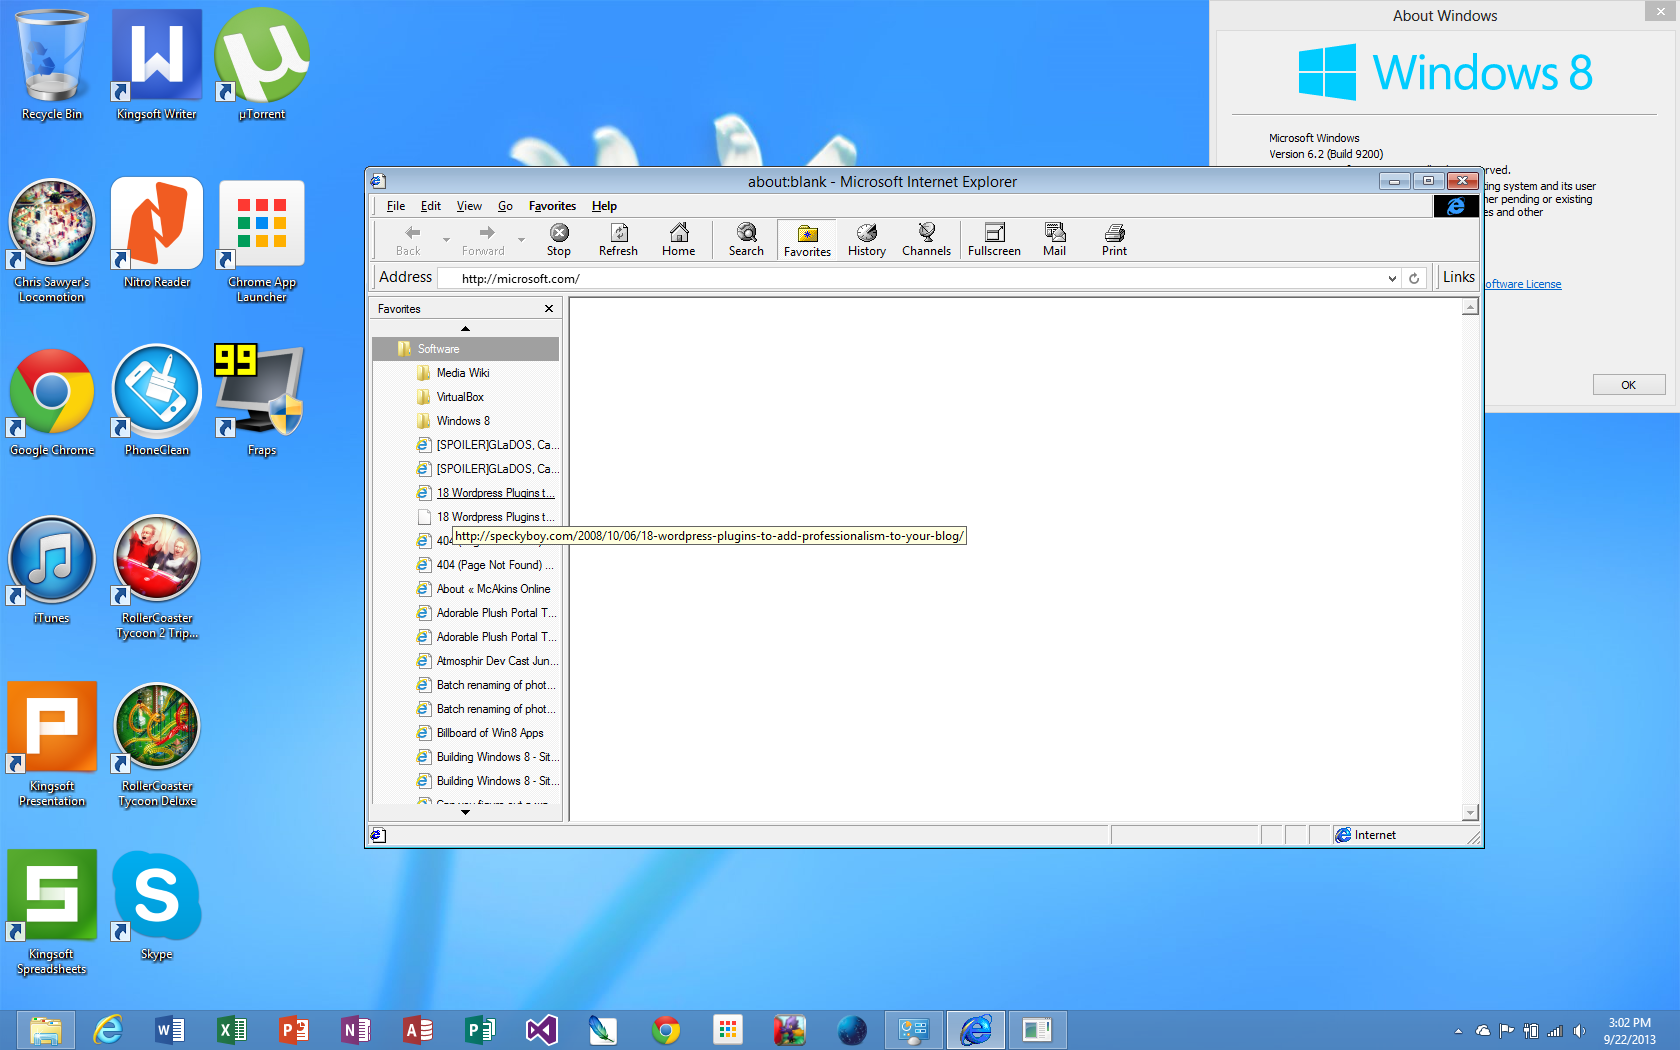 Let's Run Internet Explorer 4 on Windows 8 – McAkins Online